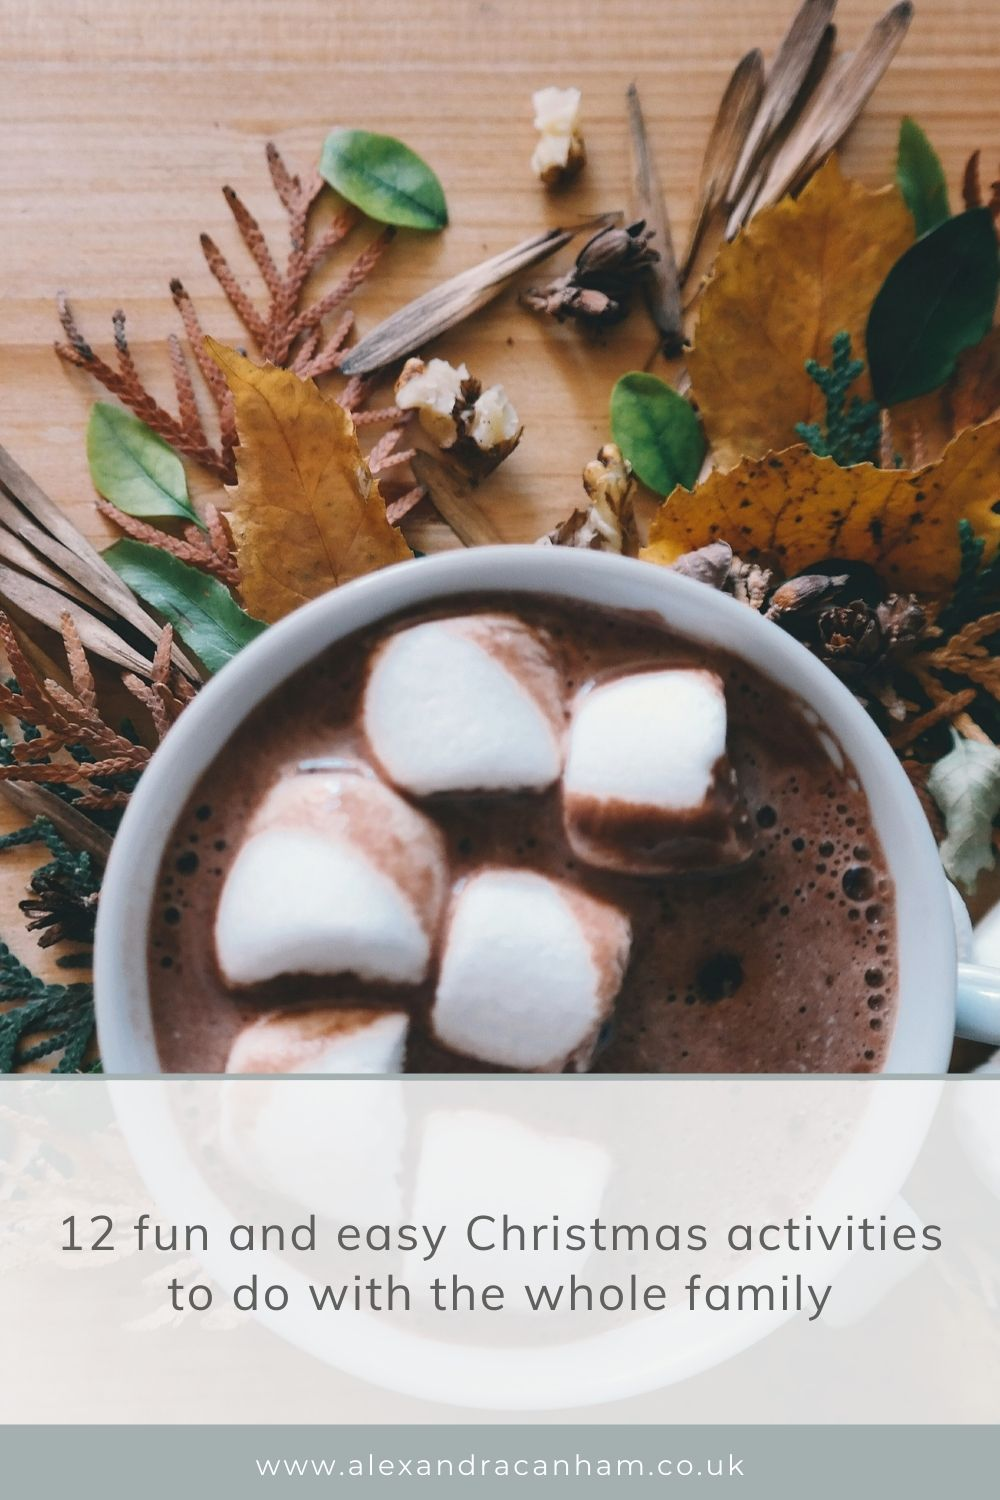 12 fun and easy Christmas activities to do with the whole family